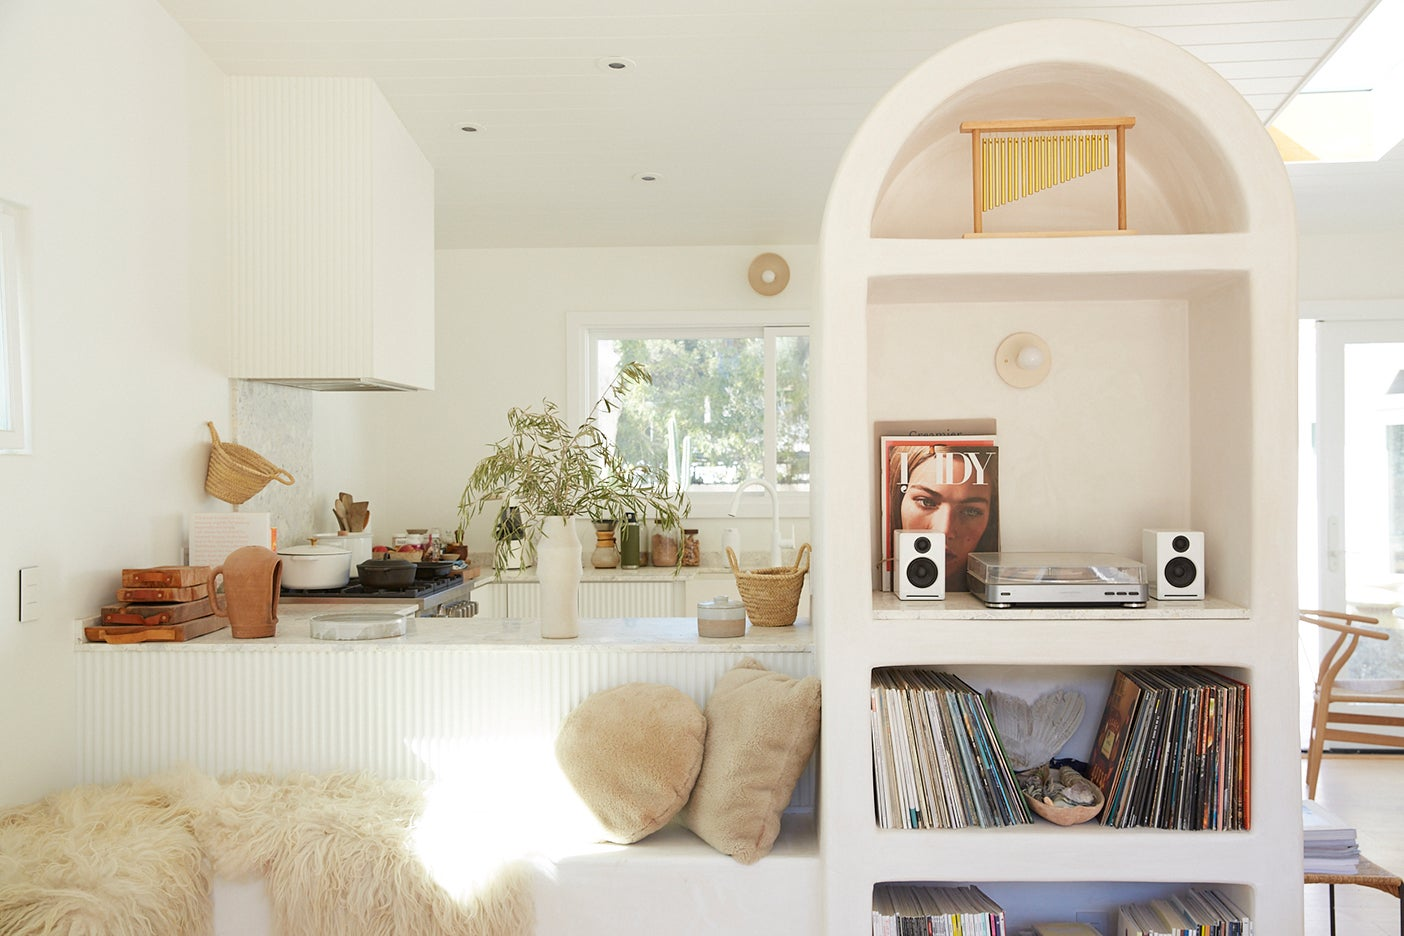 cream kitchen with rounded plaster shelf